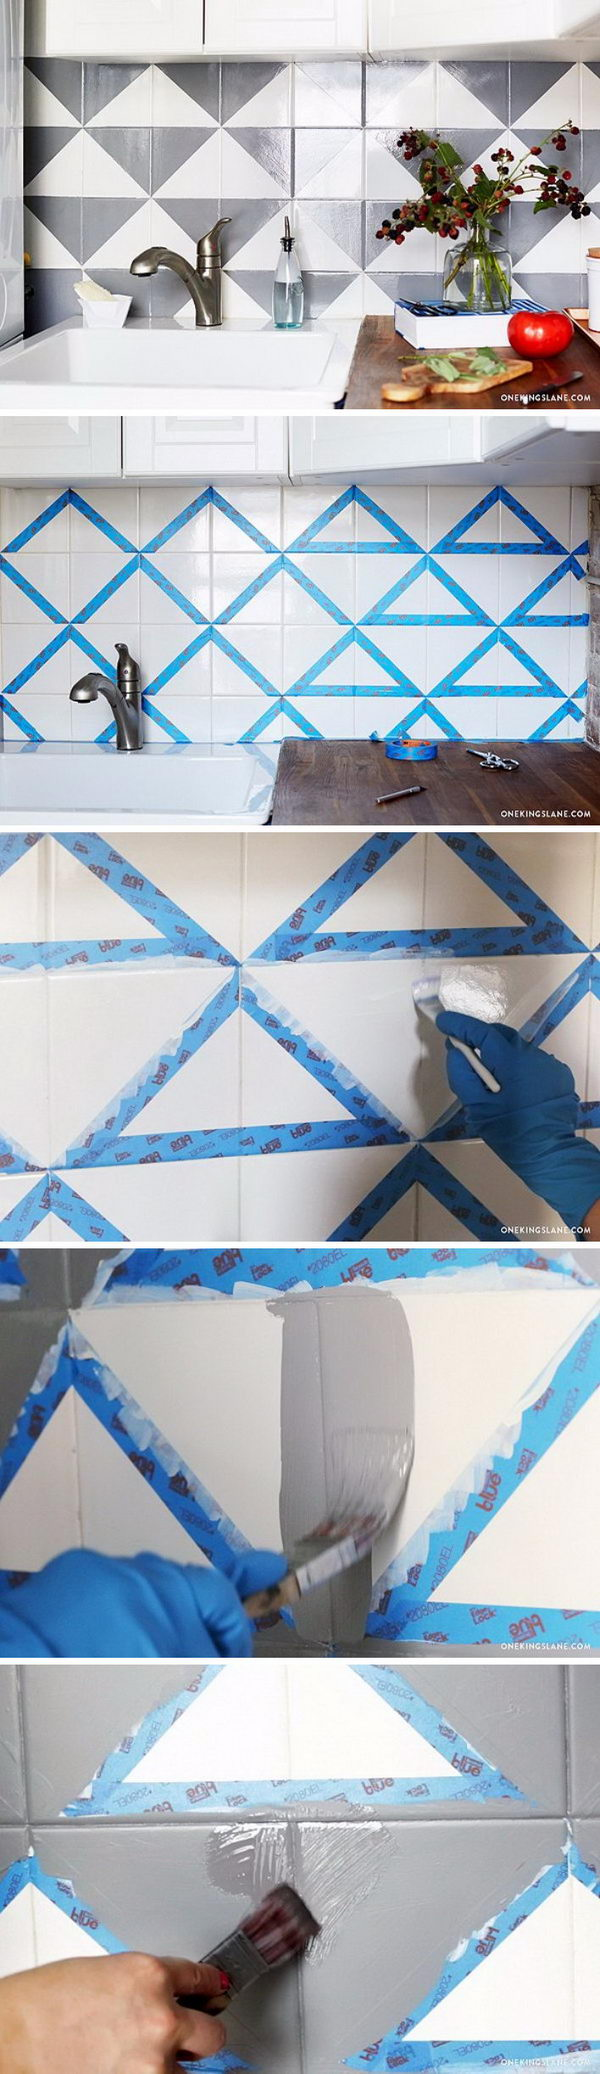 Painted Kitchen Backsplash.